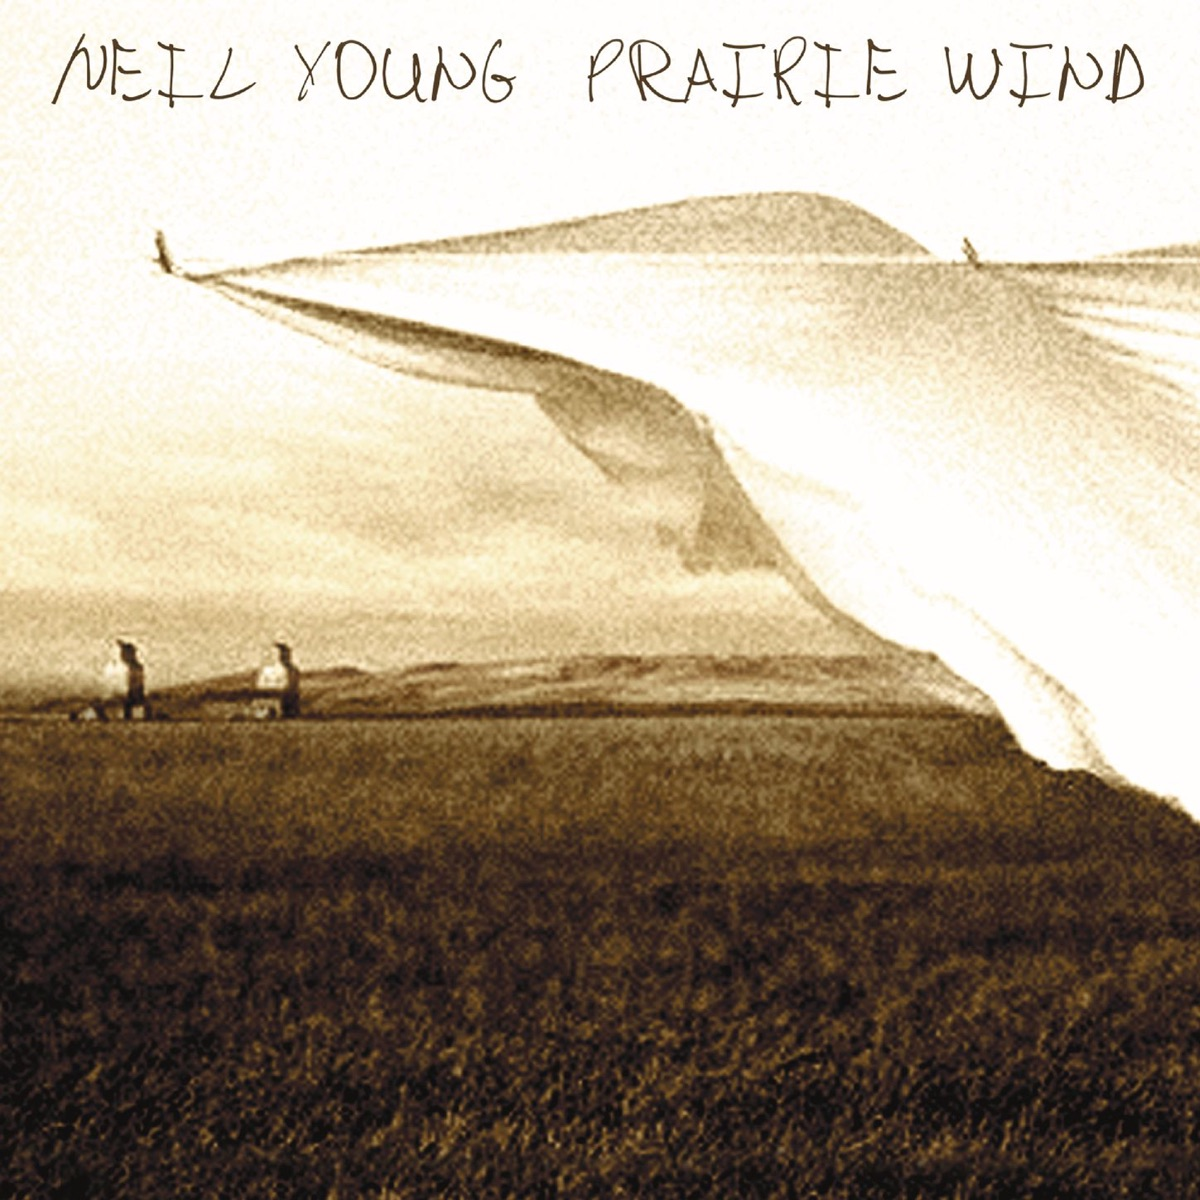 Prairie Wind Neil Young CD cover